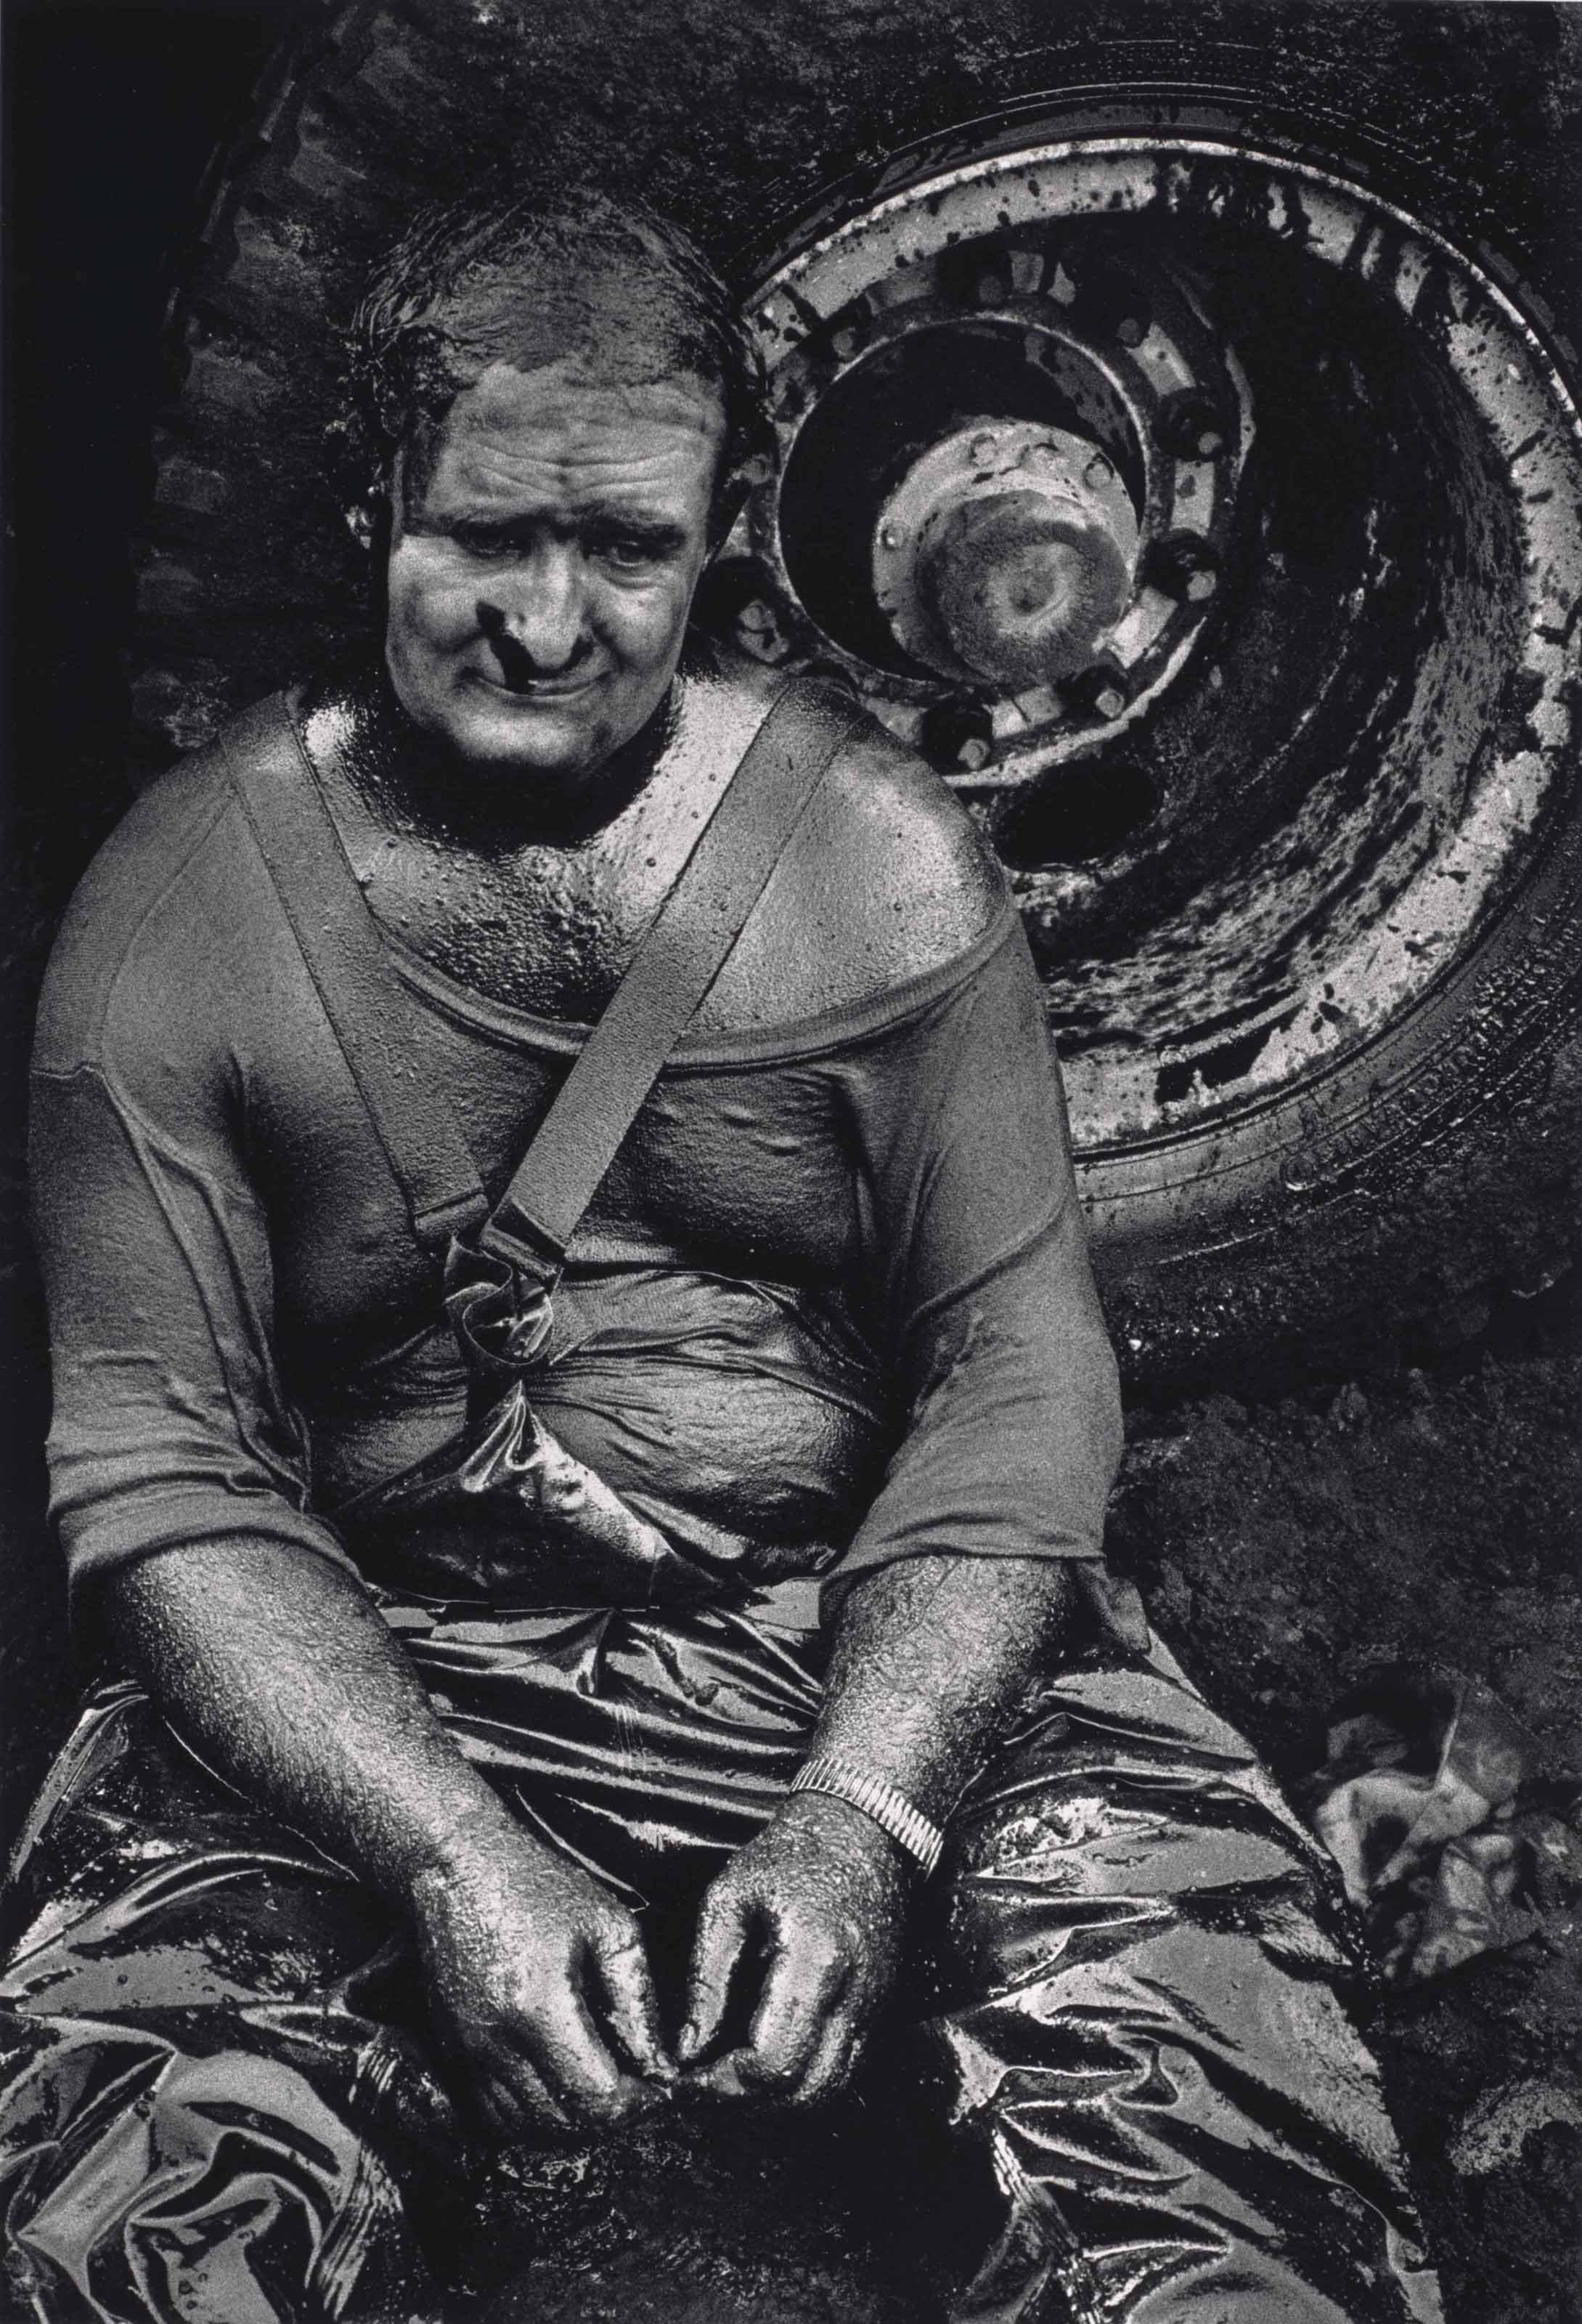 Worker Resting, Great Burhan Oil Field, Kuwait, 1991